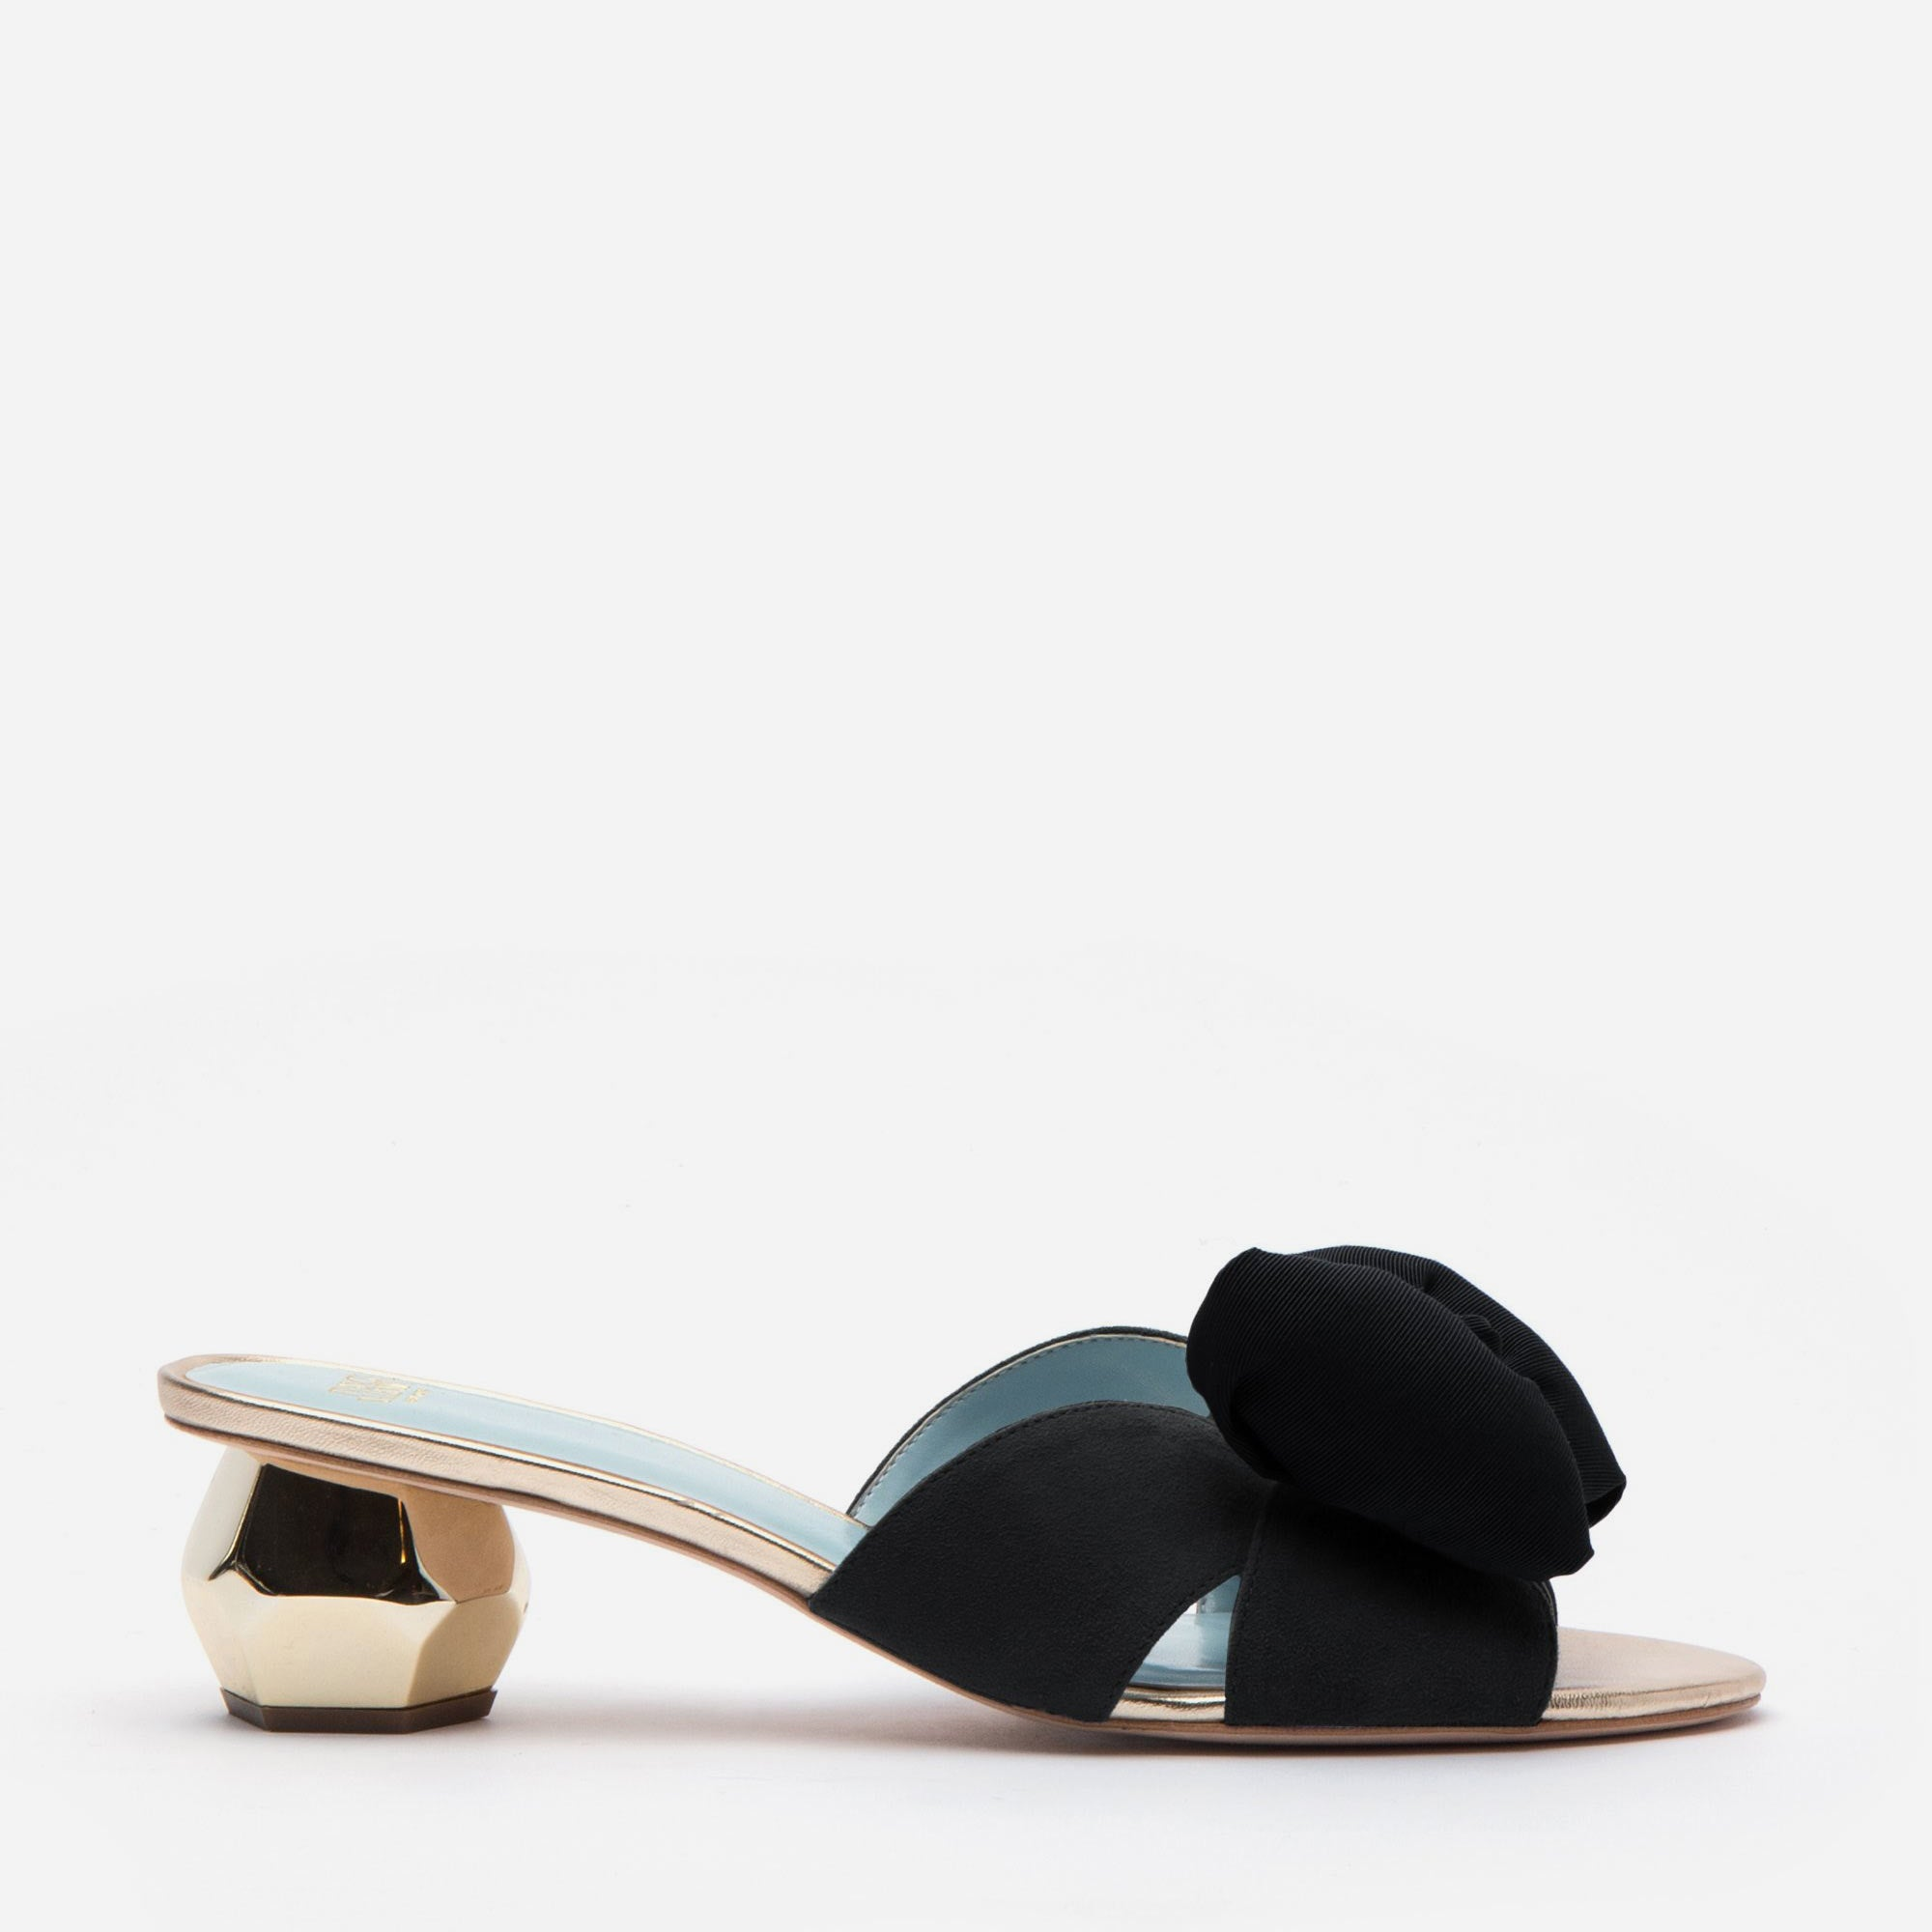 Dottie Suede Bow Slide Black *FINAL SALE*